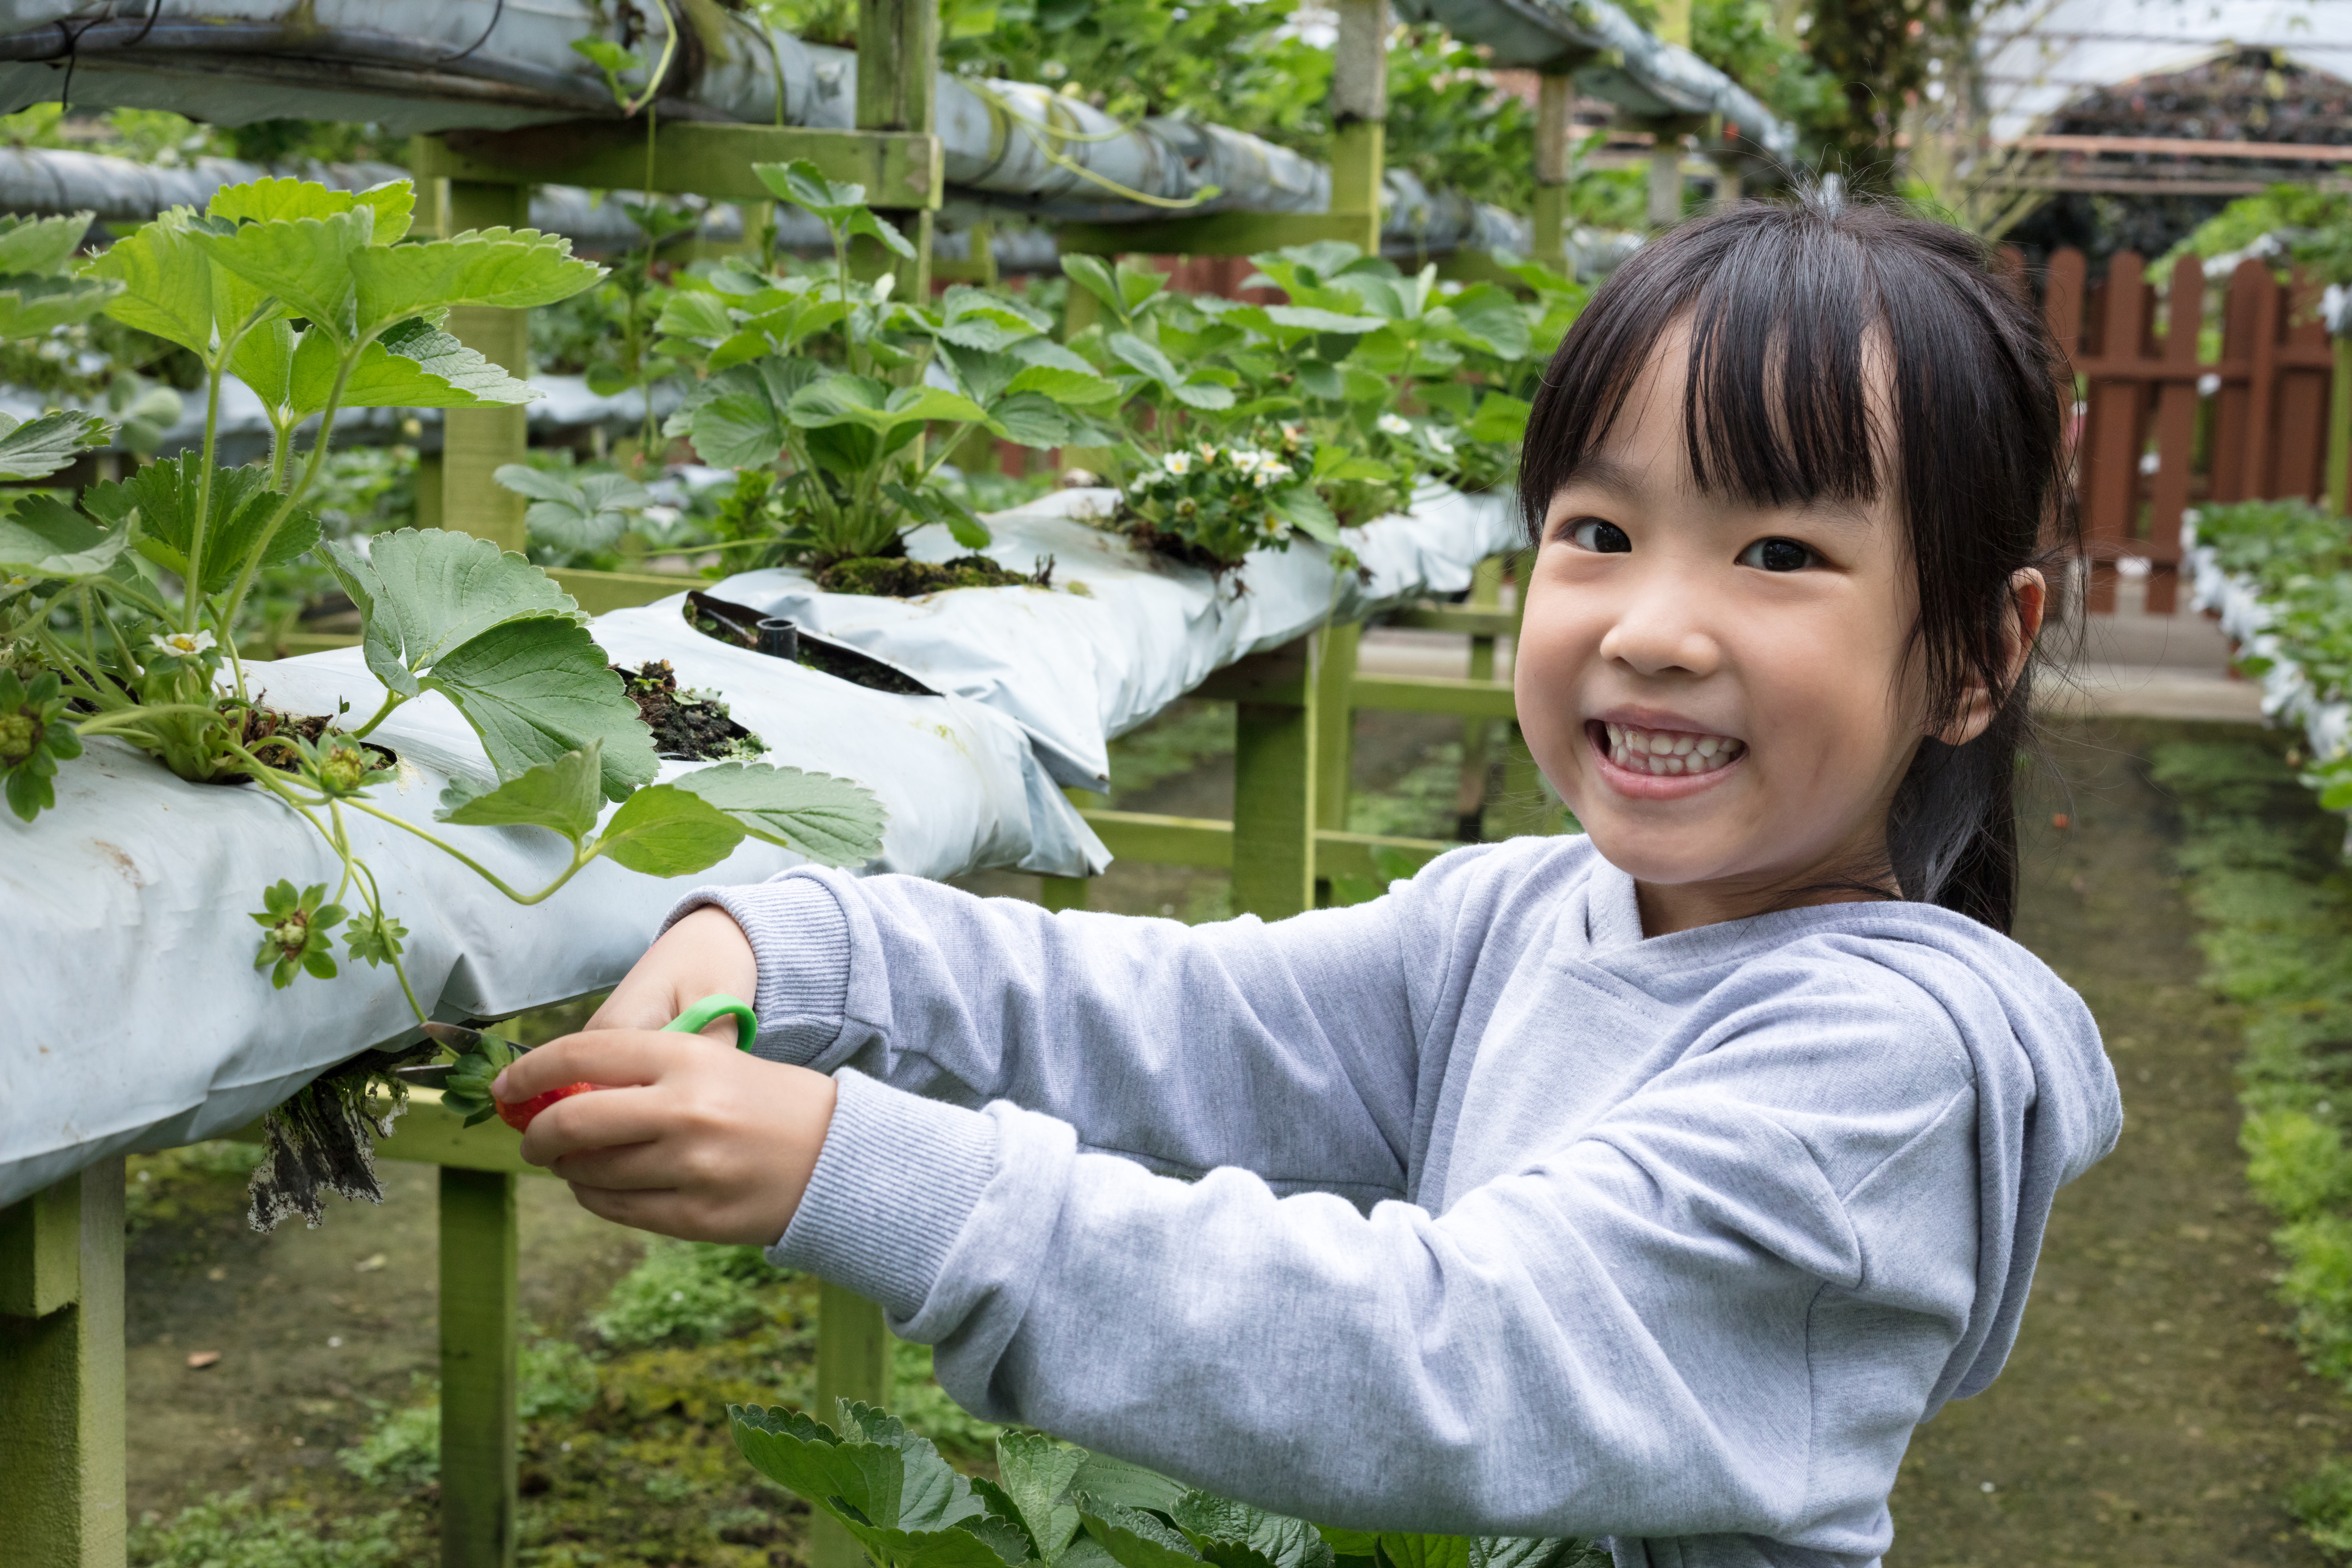 Planting a garden is a great summer activity with children